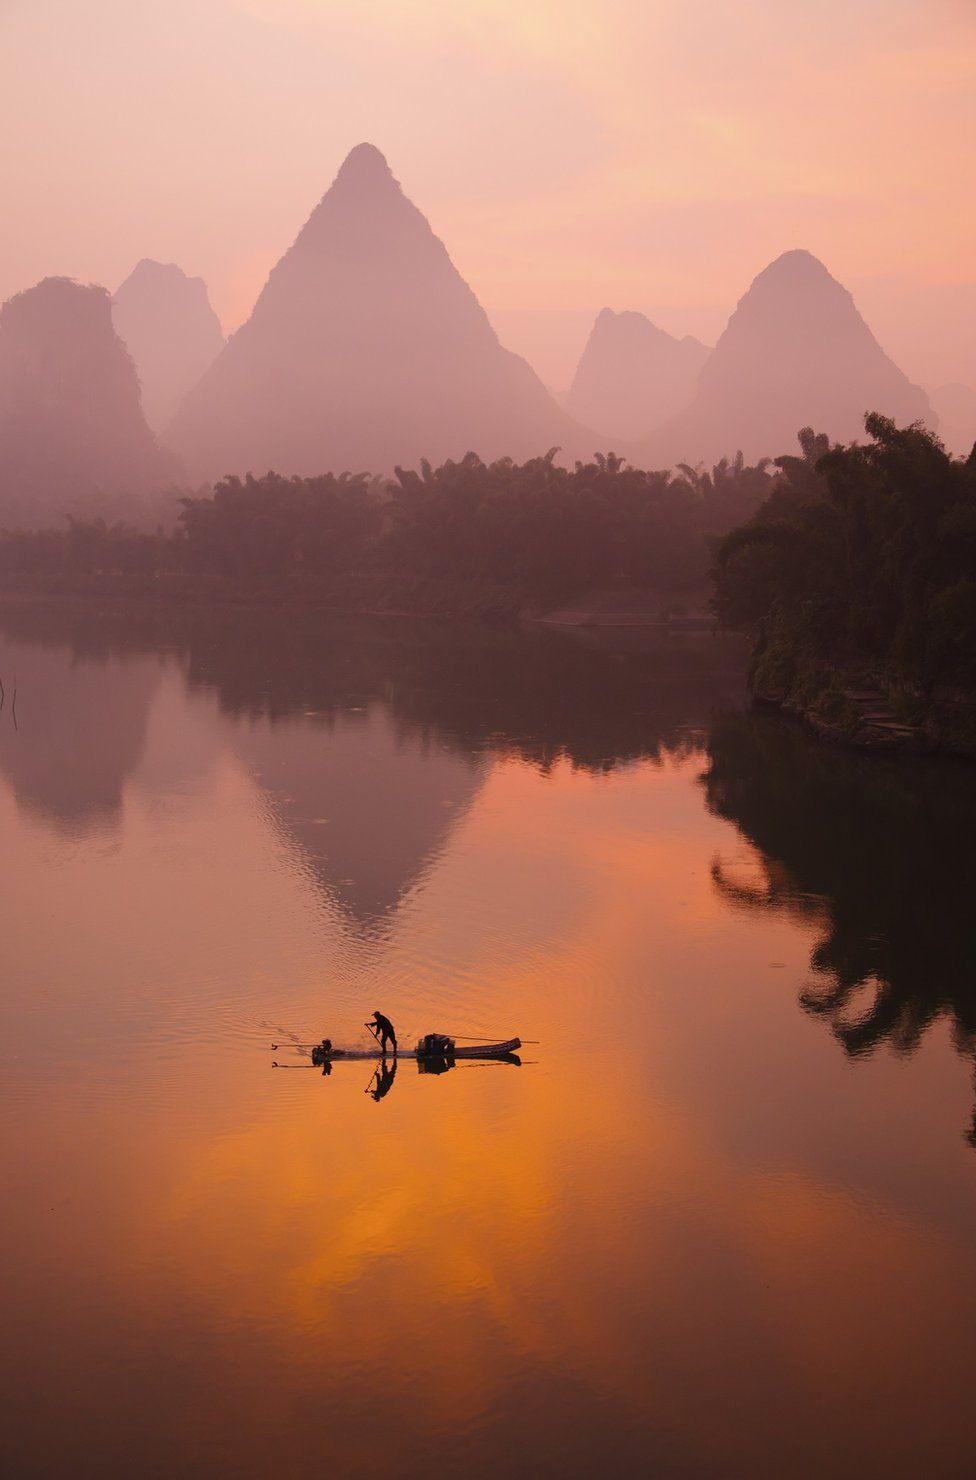 A sunset view of a person on a boat on water with mountains behind them